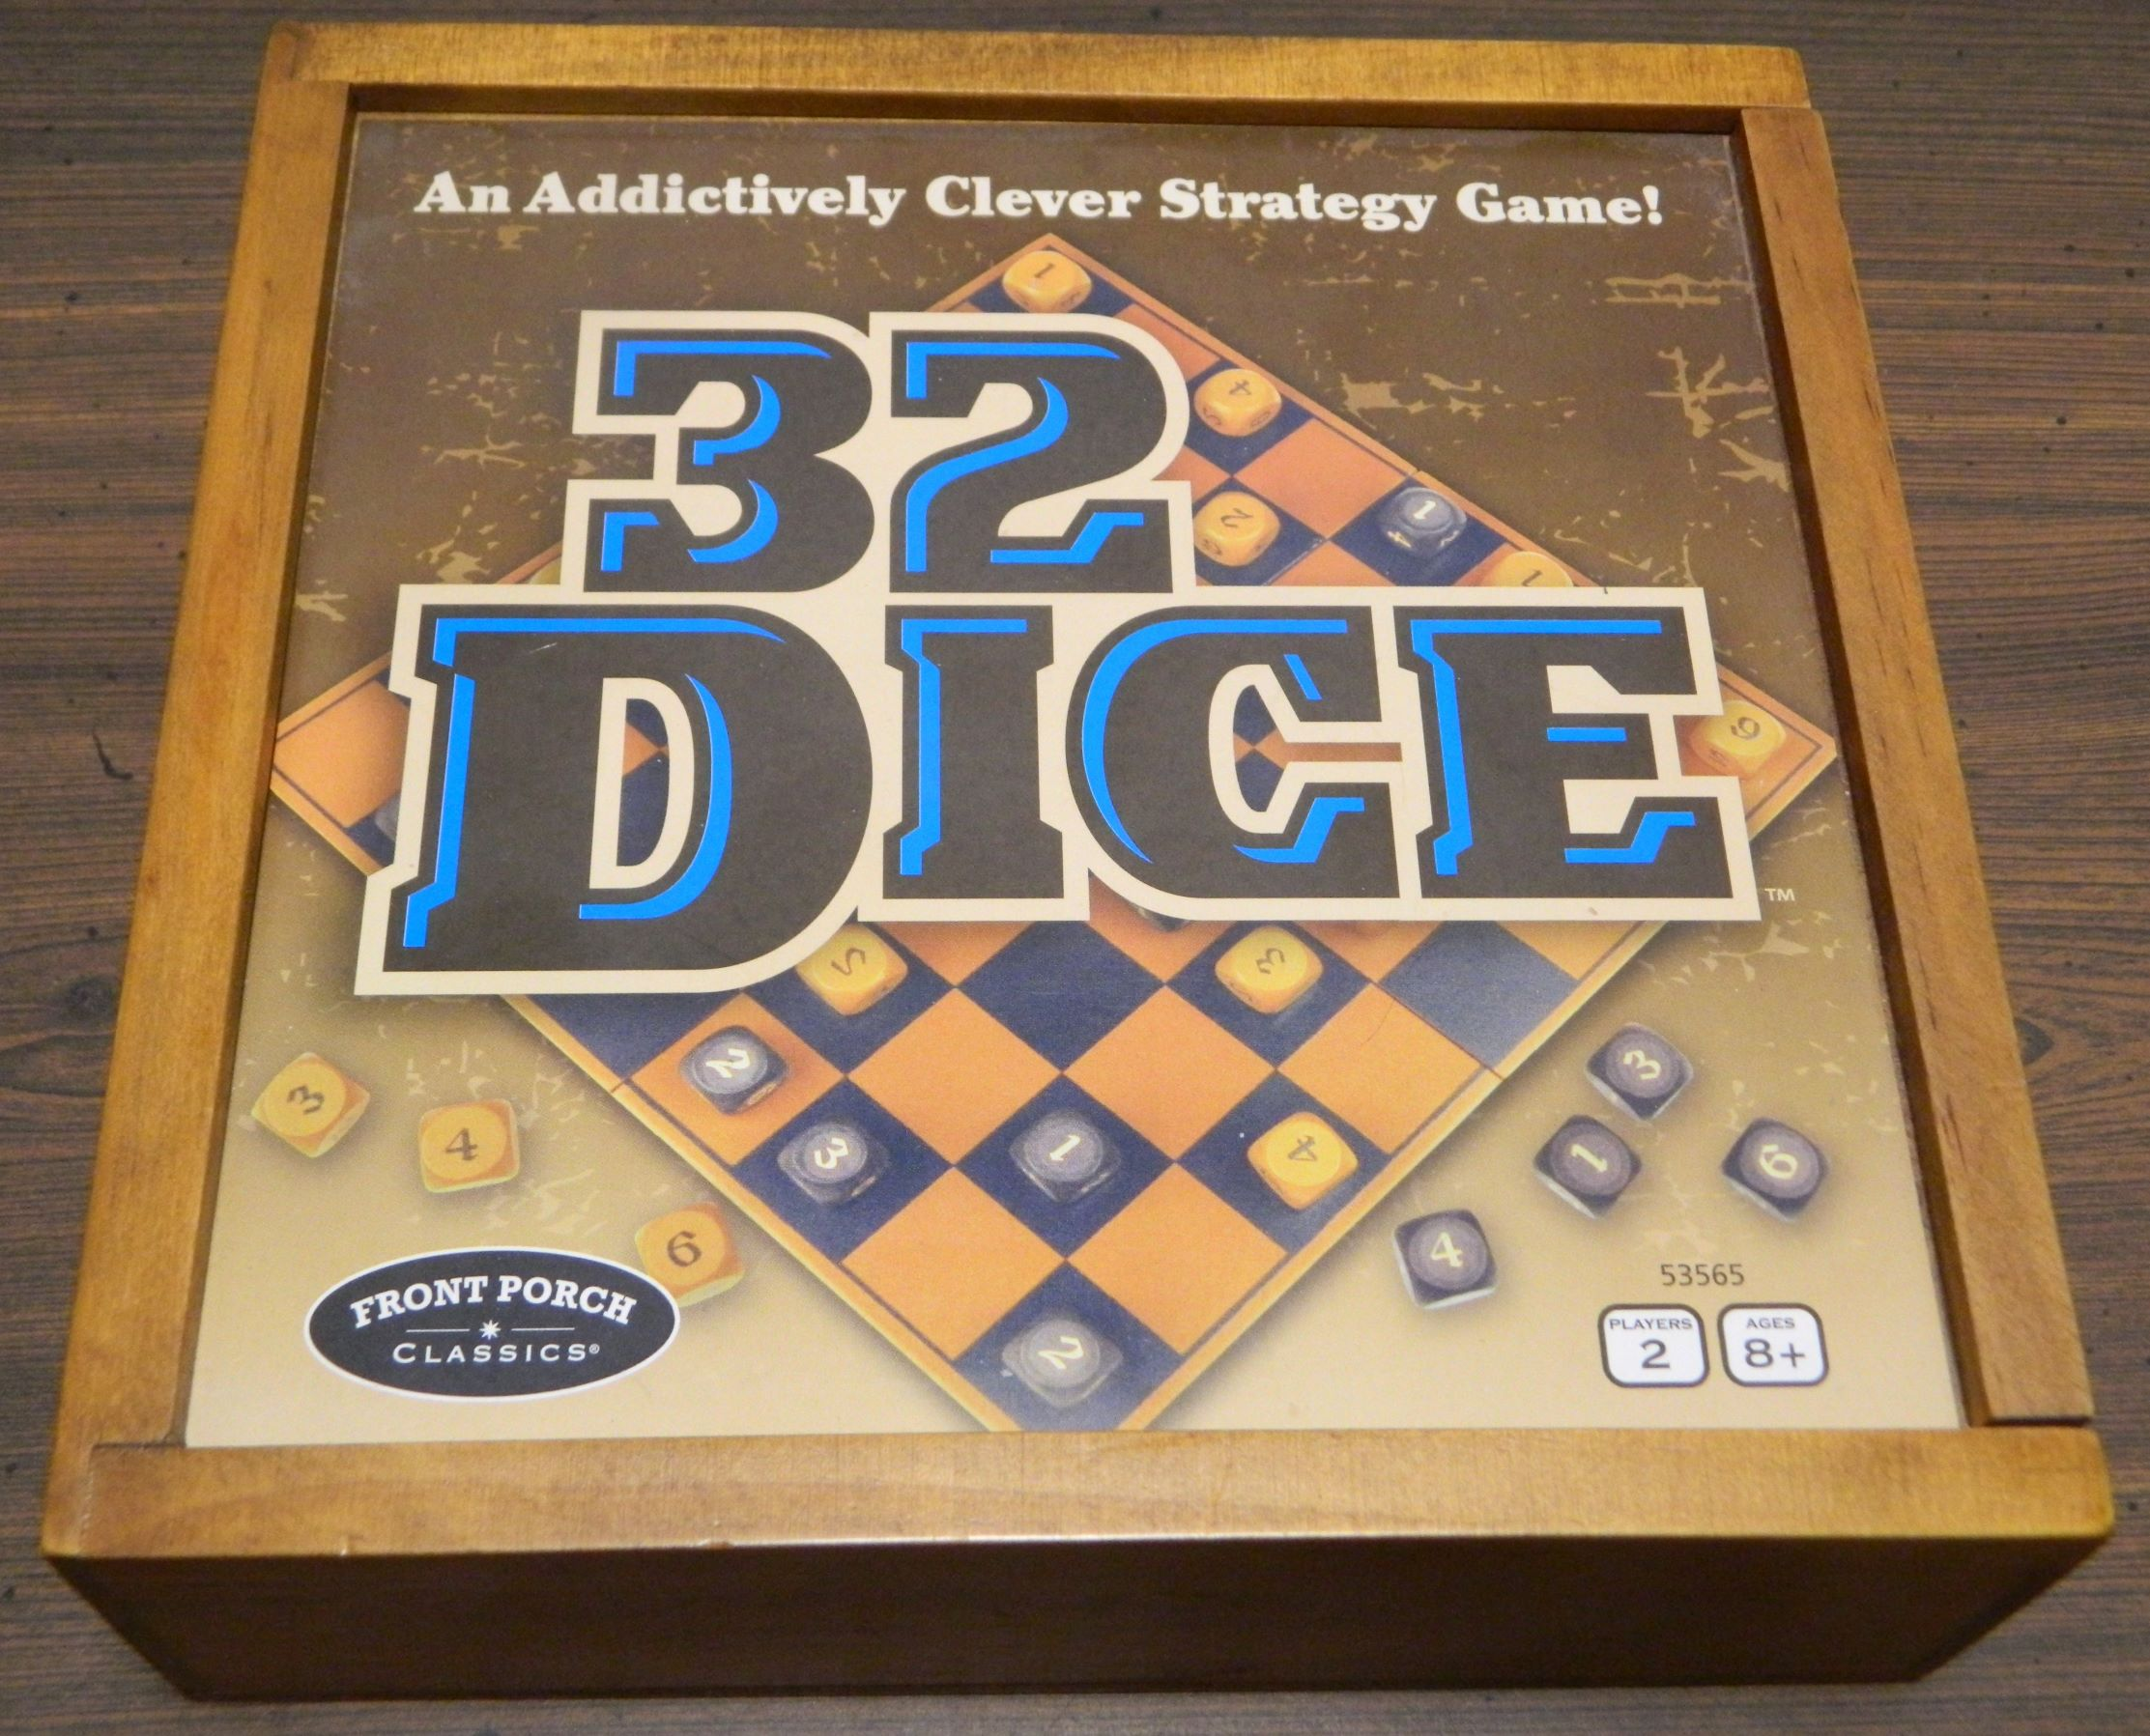 Box for 32 Dice